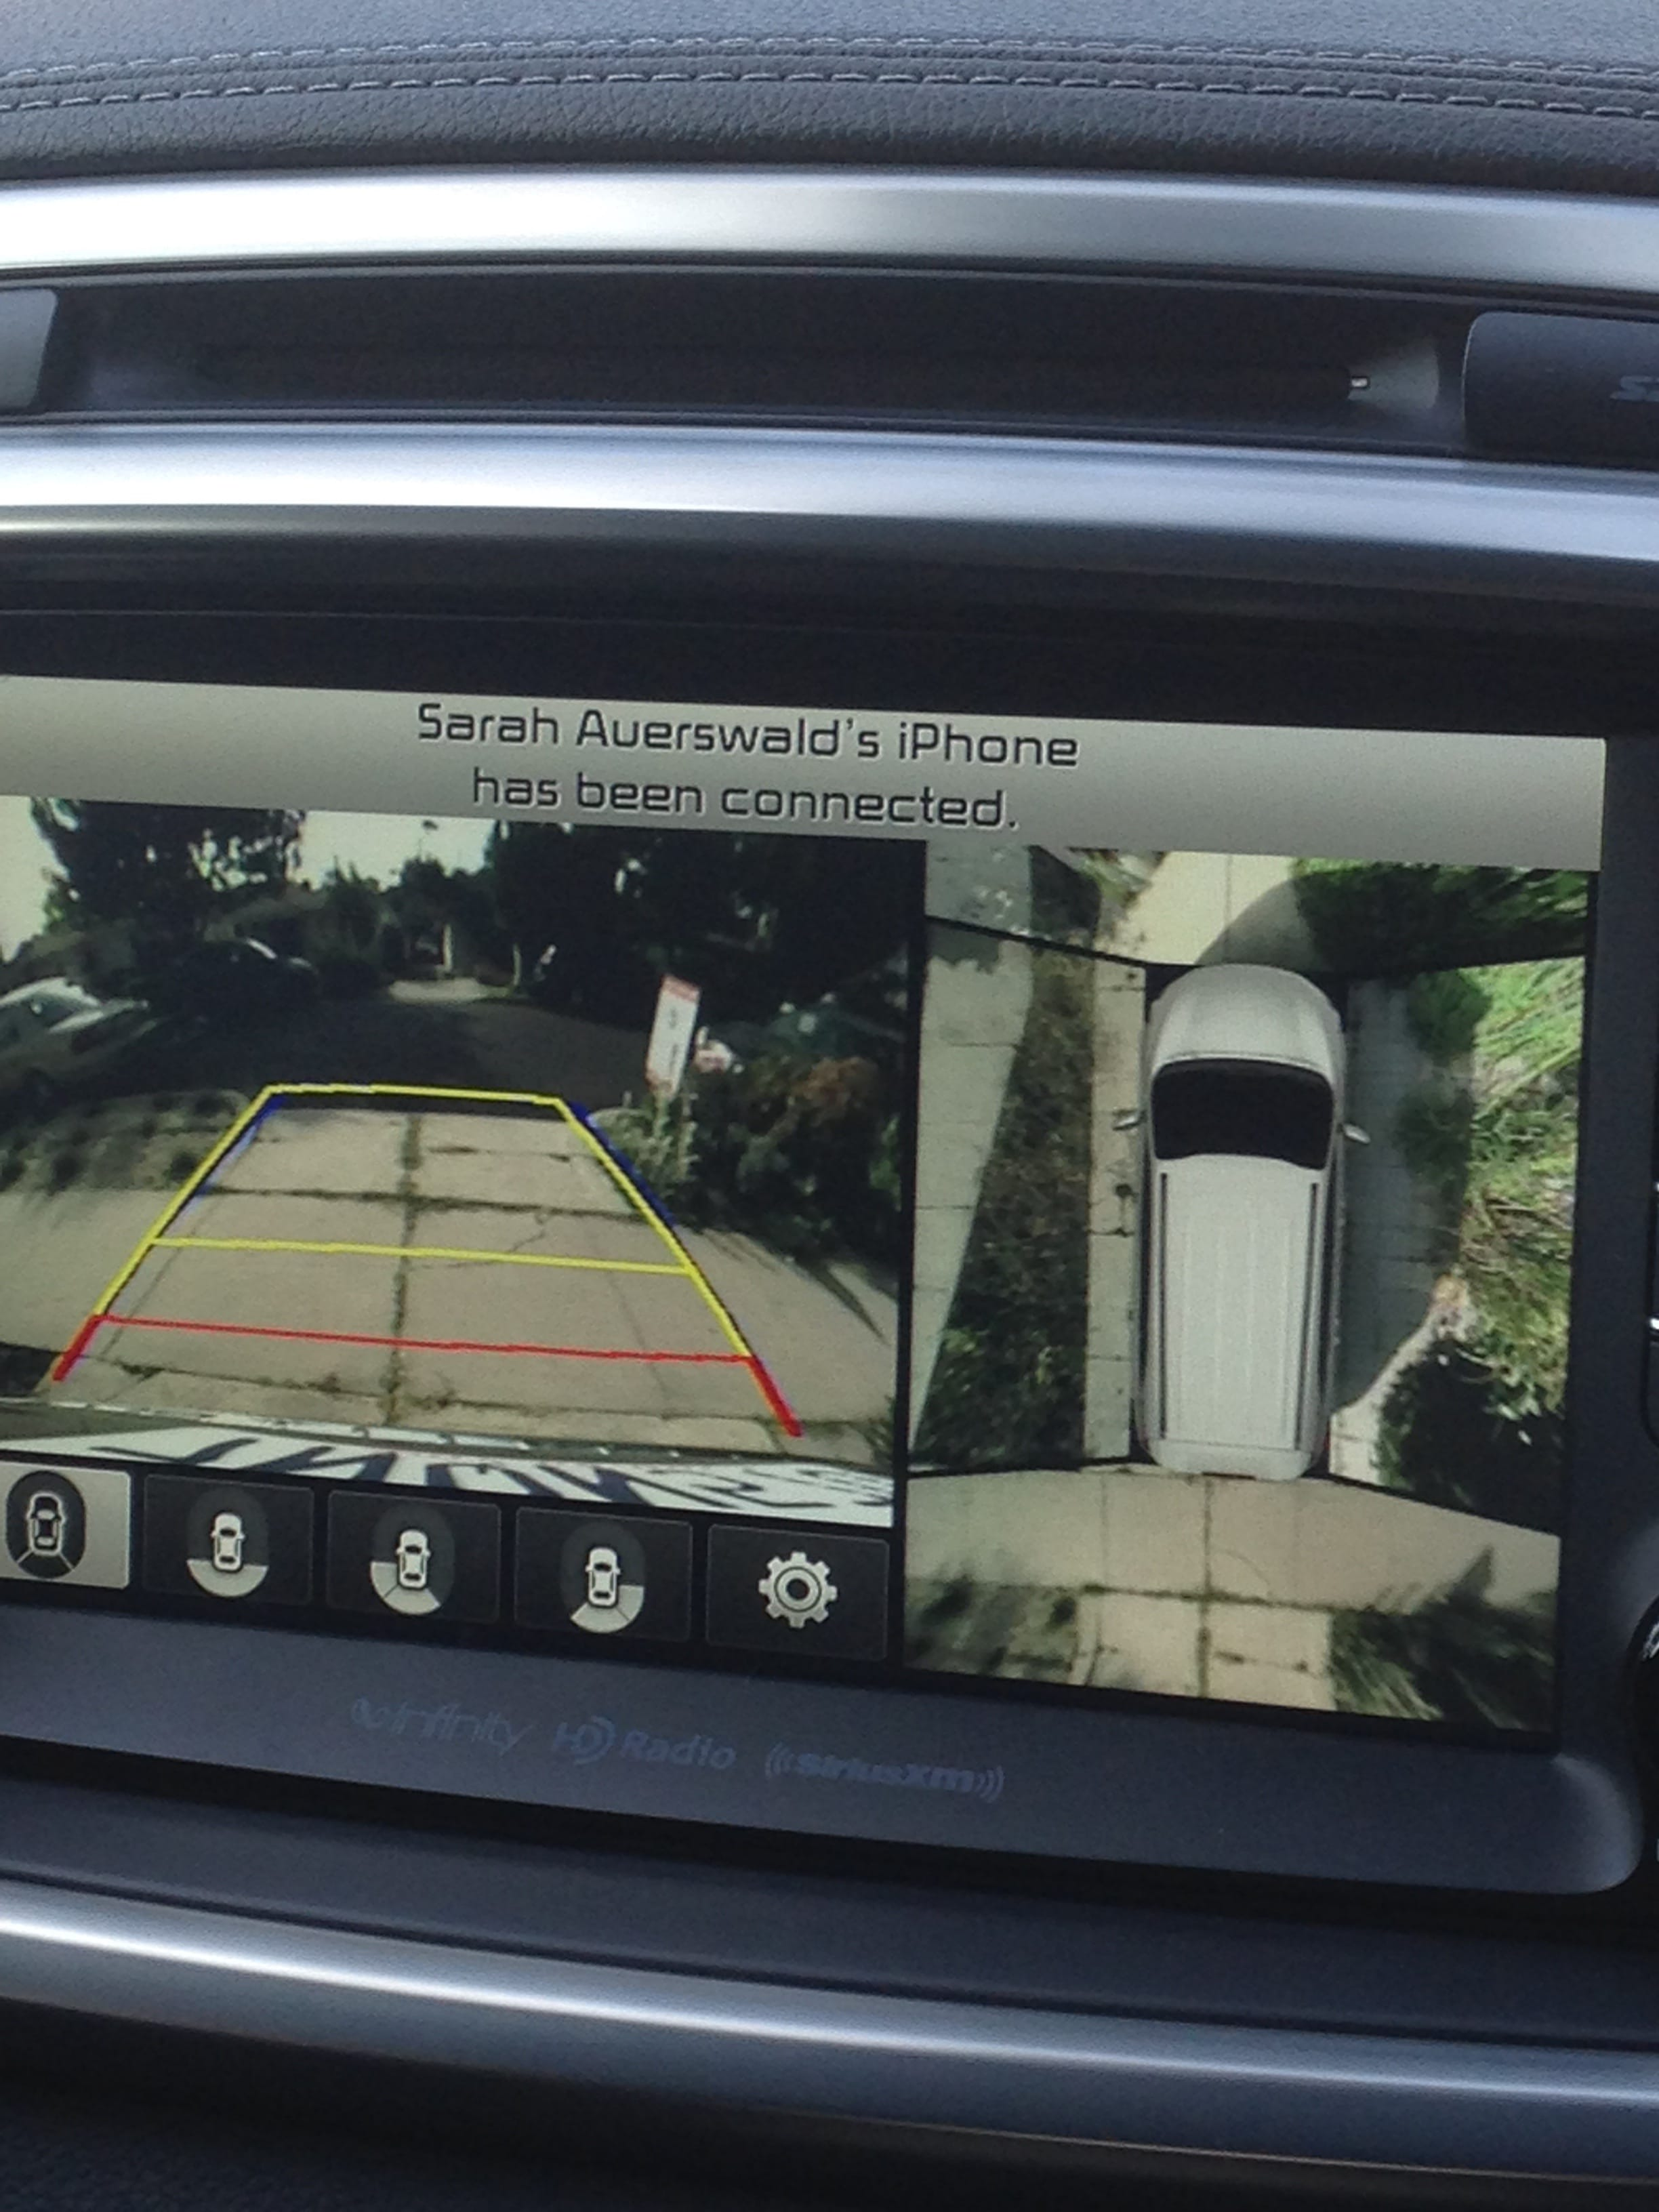 rear and side view camera angles from the 2016 Kia Sorento